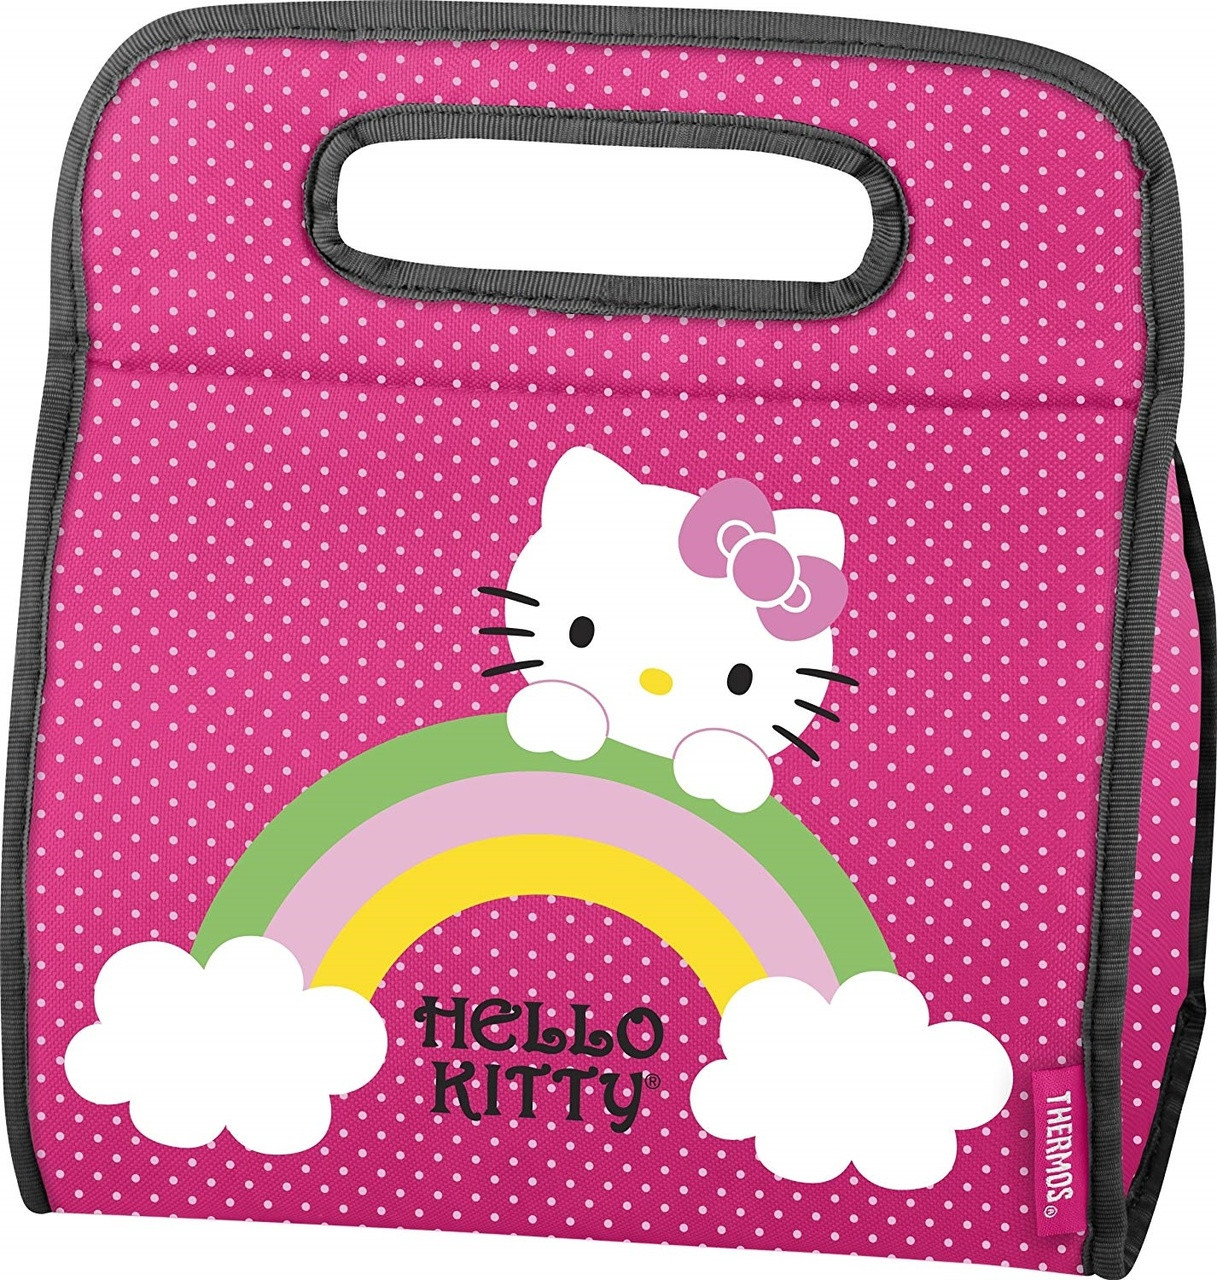 6c67457bf Hello Kitty Lunch Box - Pink | Partytoyz.com